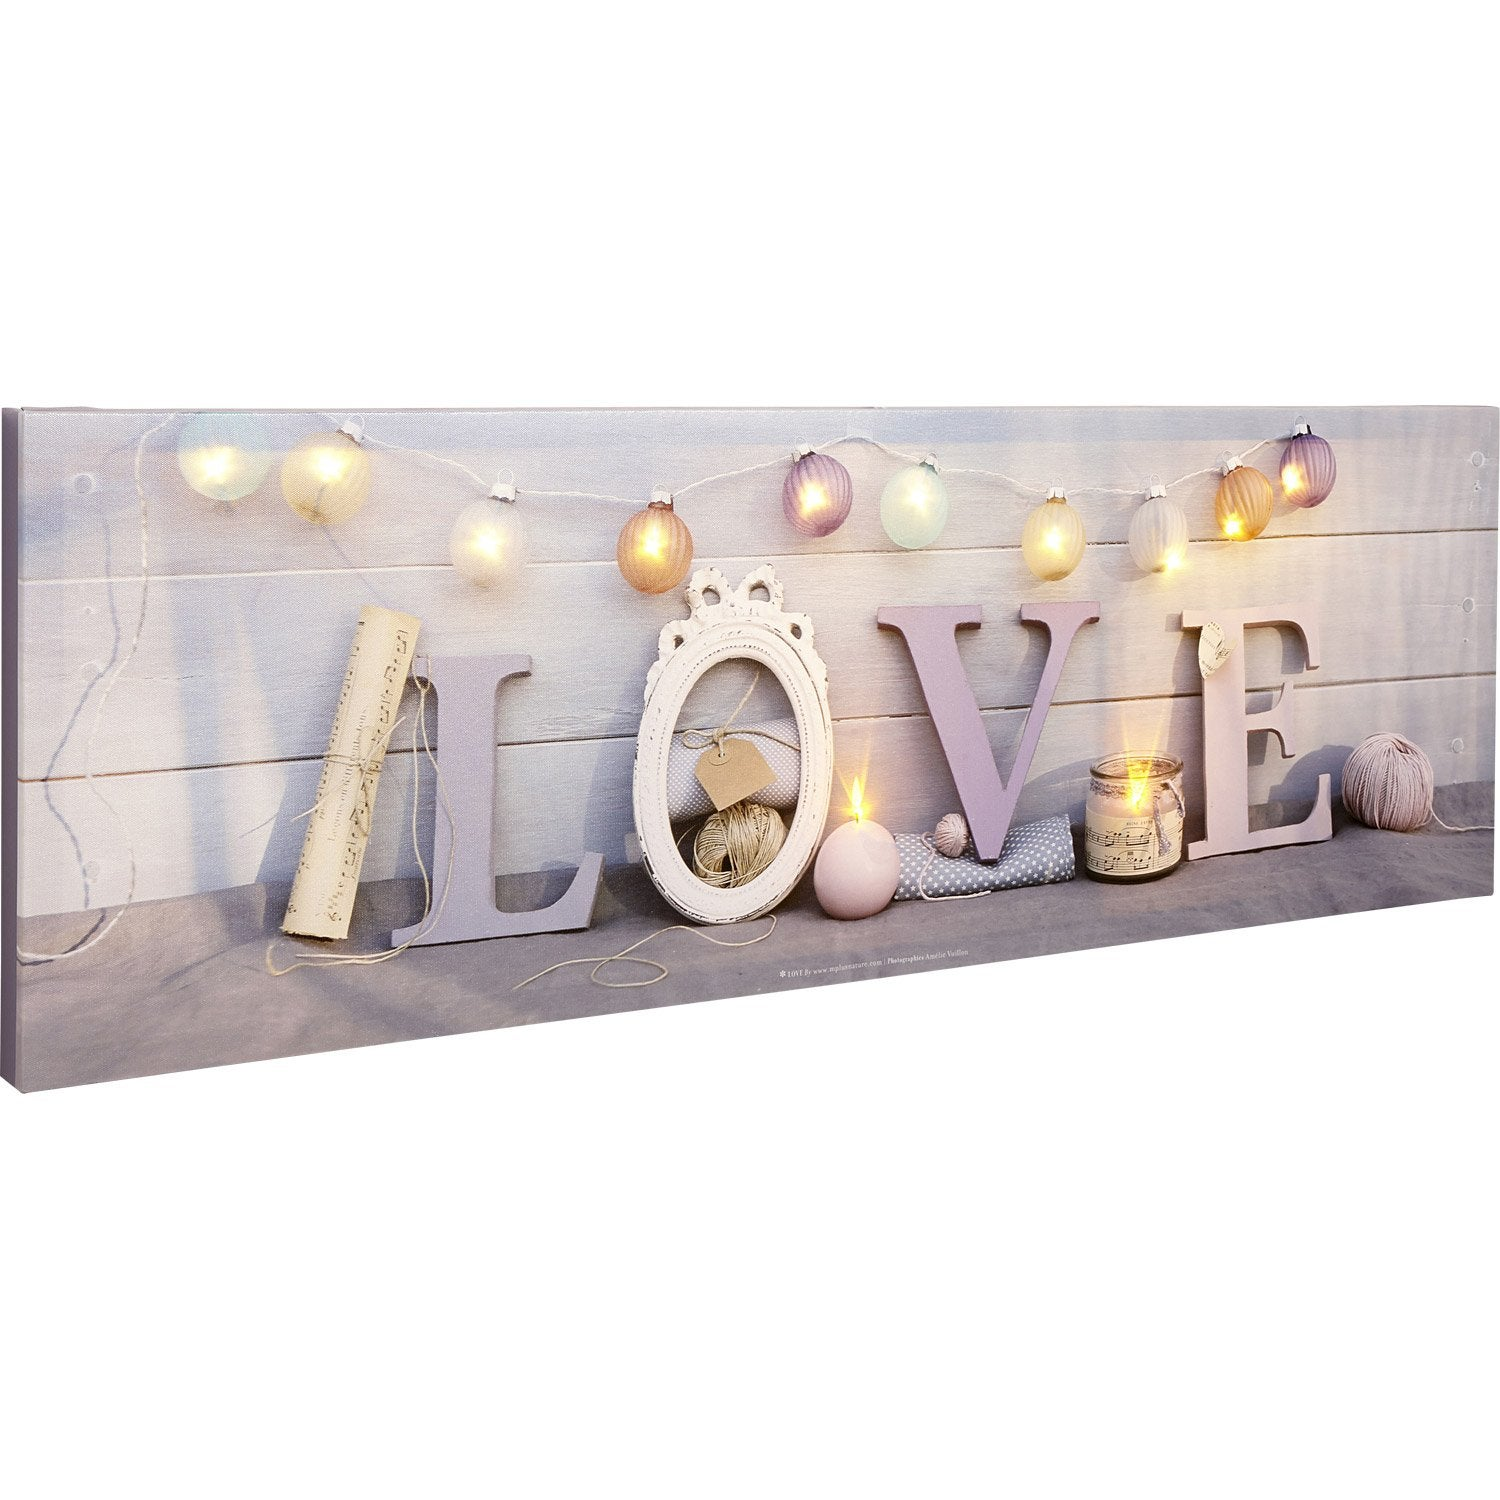 Toile led mot love guirlande bougies 90x30 cm leroy for Leroy merlin merlin